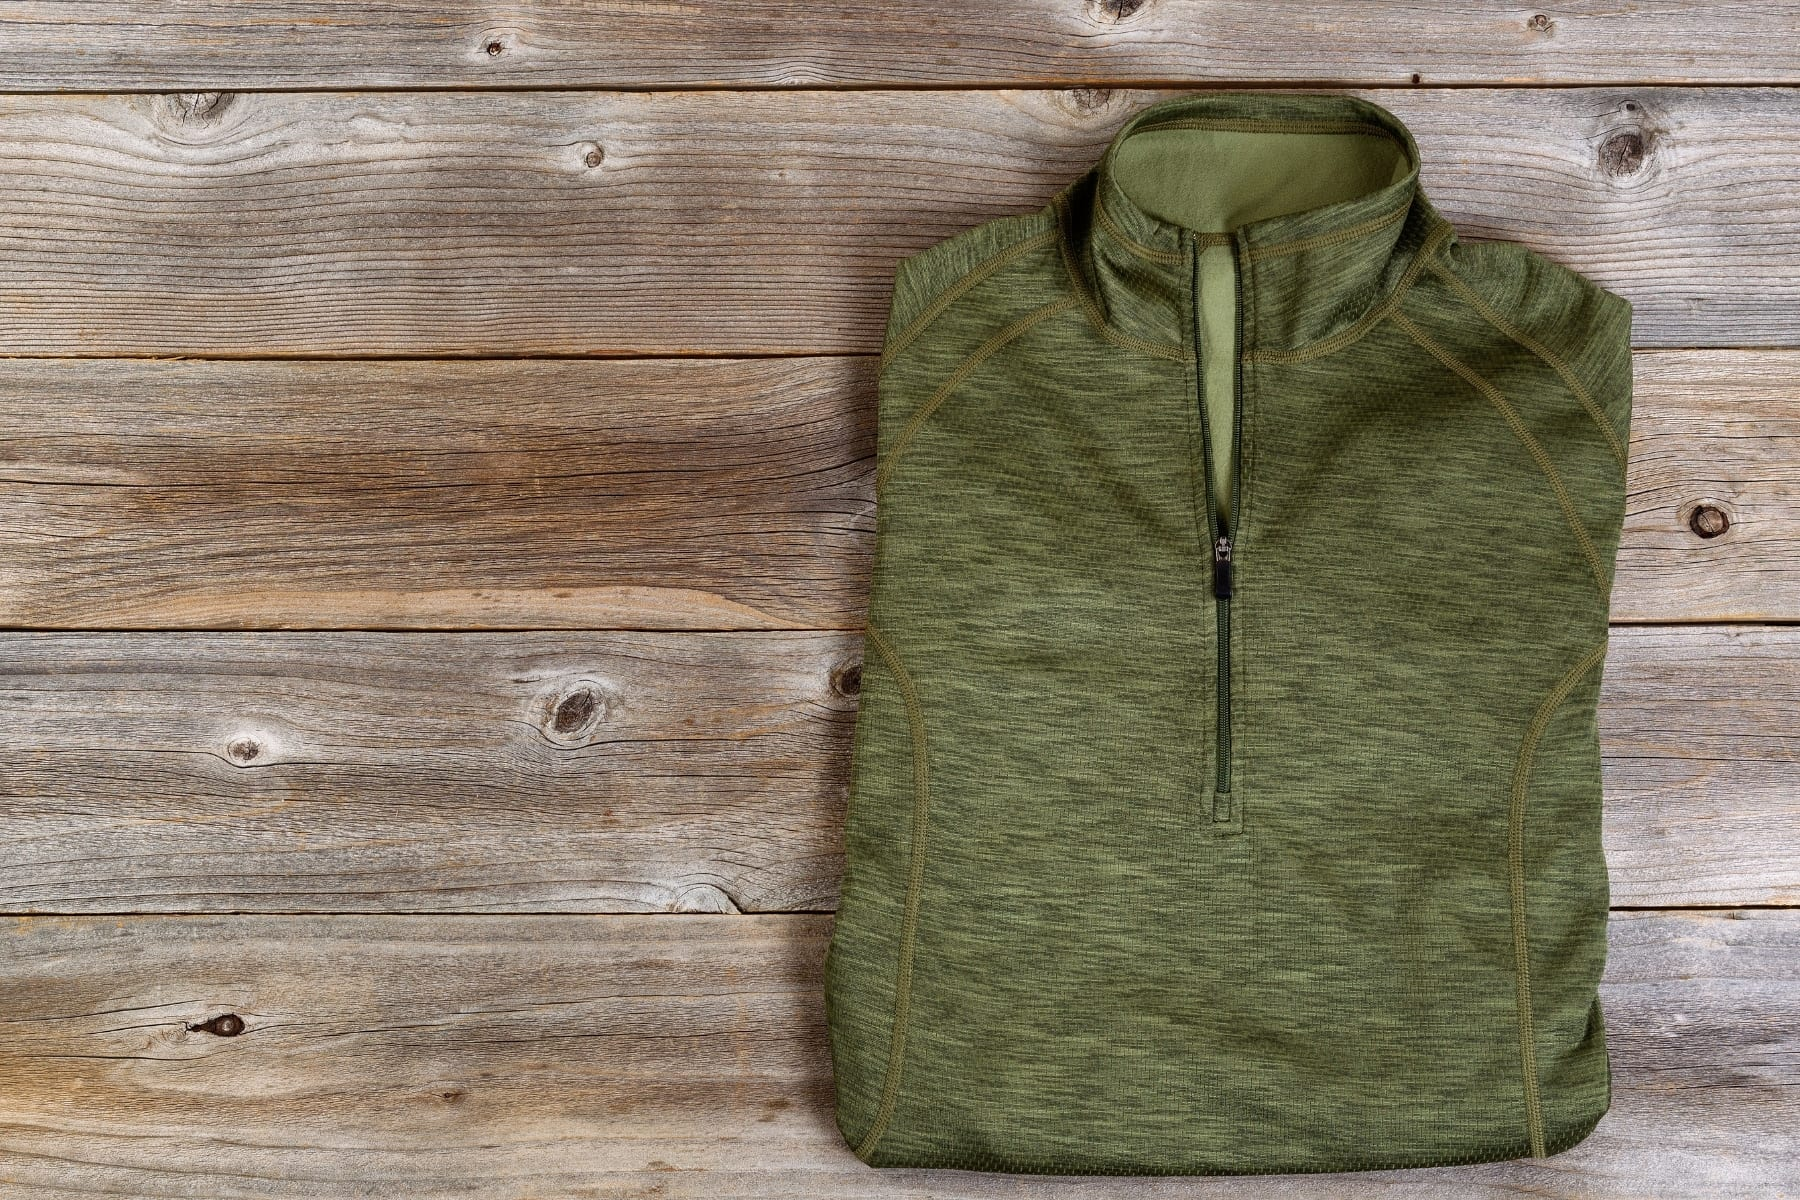 A green zip up jacket folded on a wooden background.